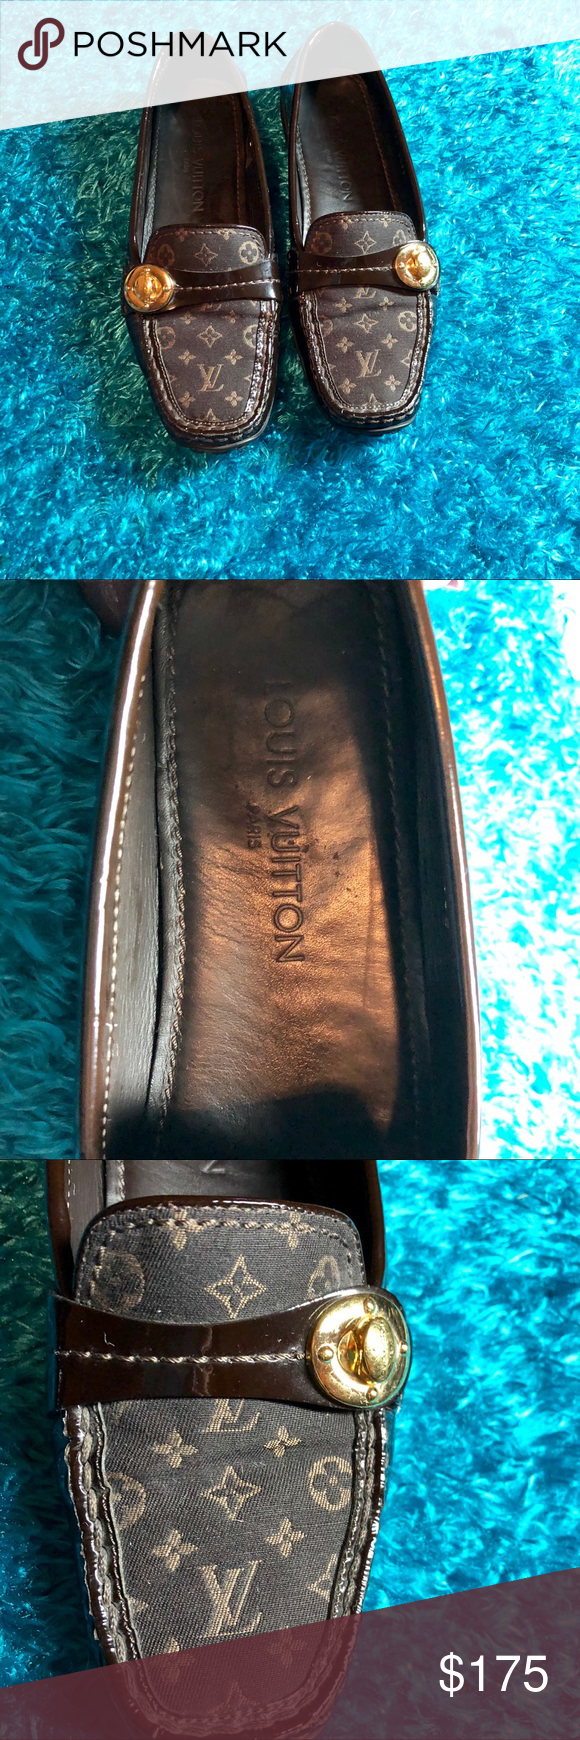 Louis Vuitton Loafers Louis Vuitton loafers Size 36 1/5 ...